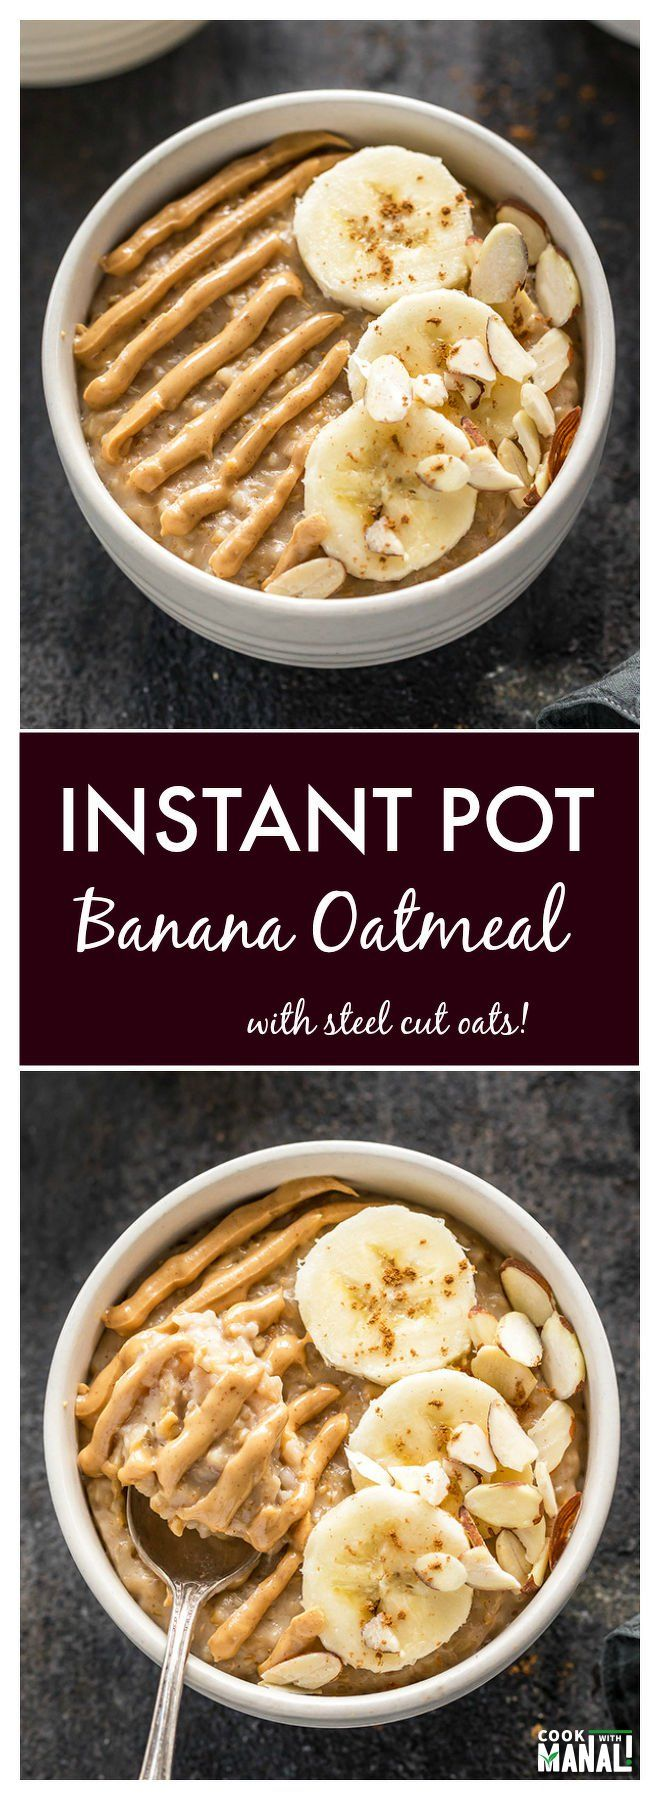 Instant Pot Banana Oatmeal - Cook With Manali